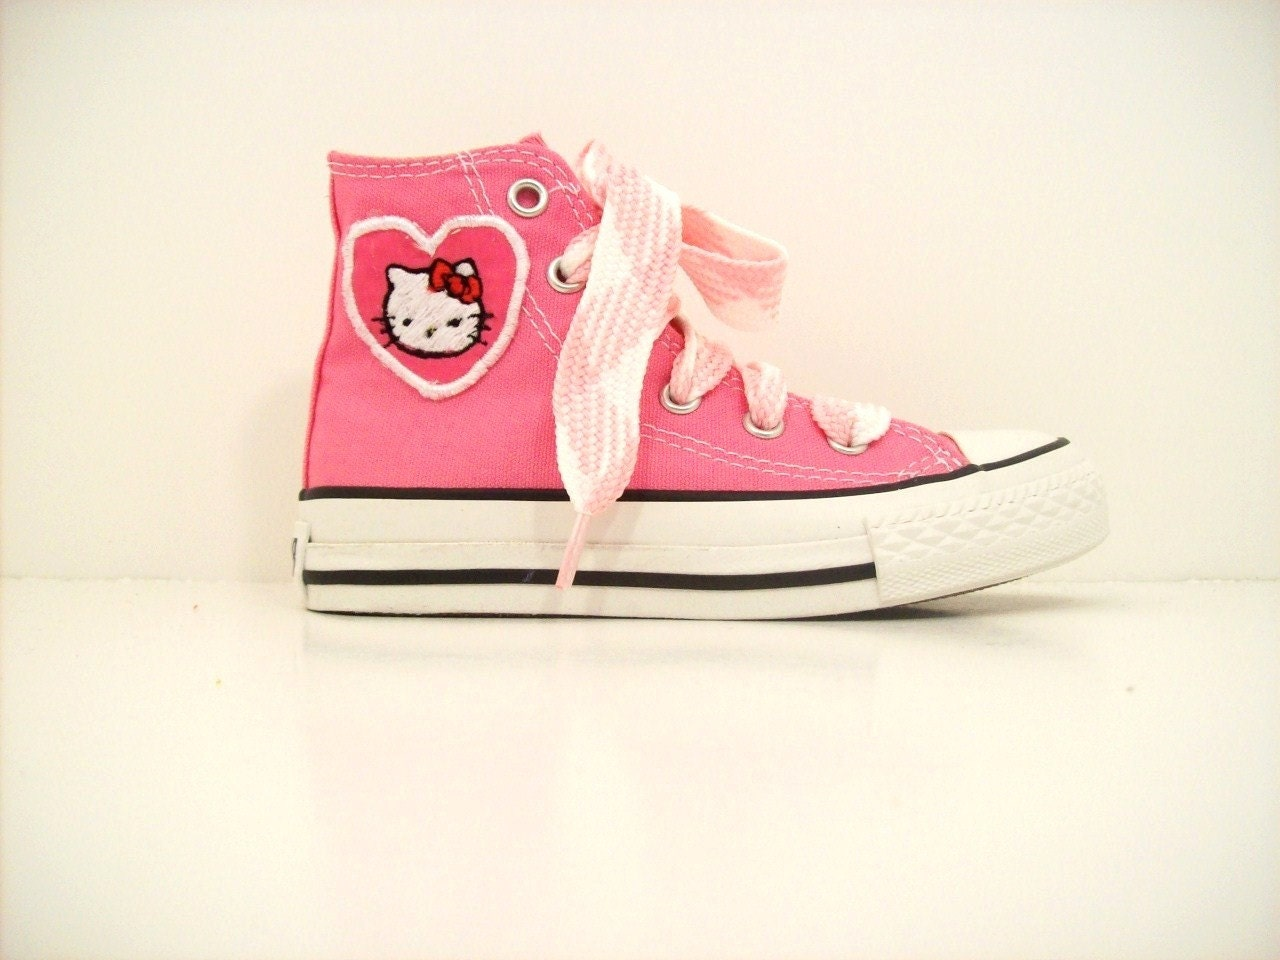 adult and youth custom chuck taylor hello kitty converse shoes